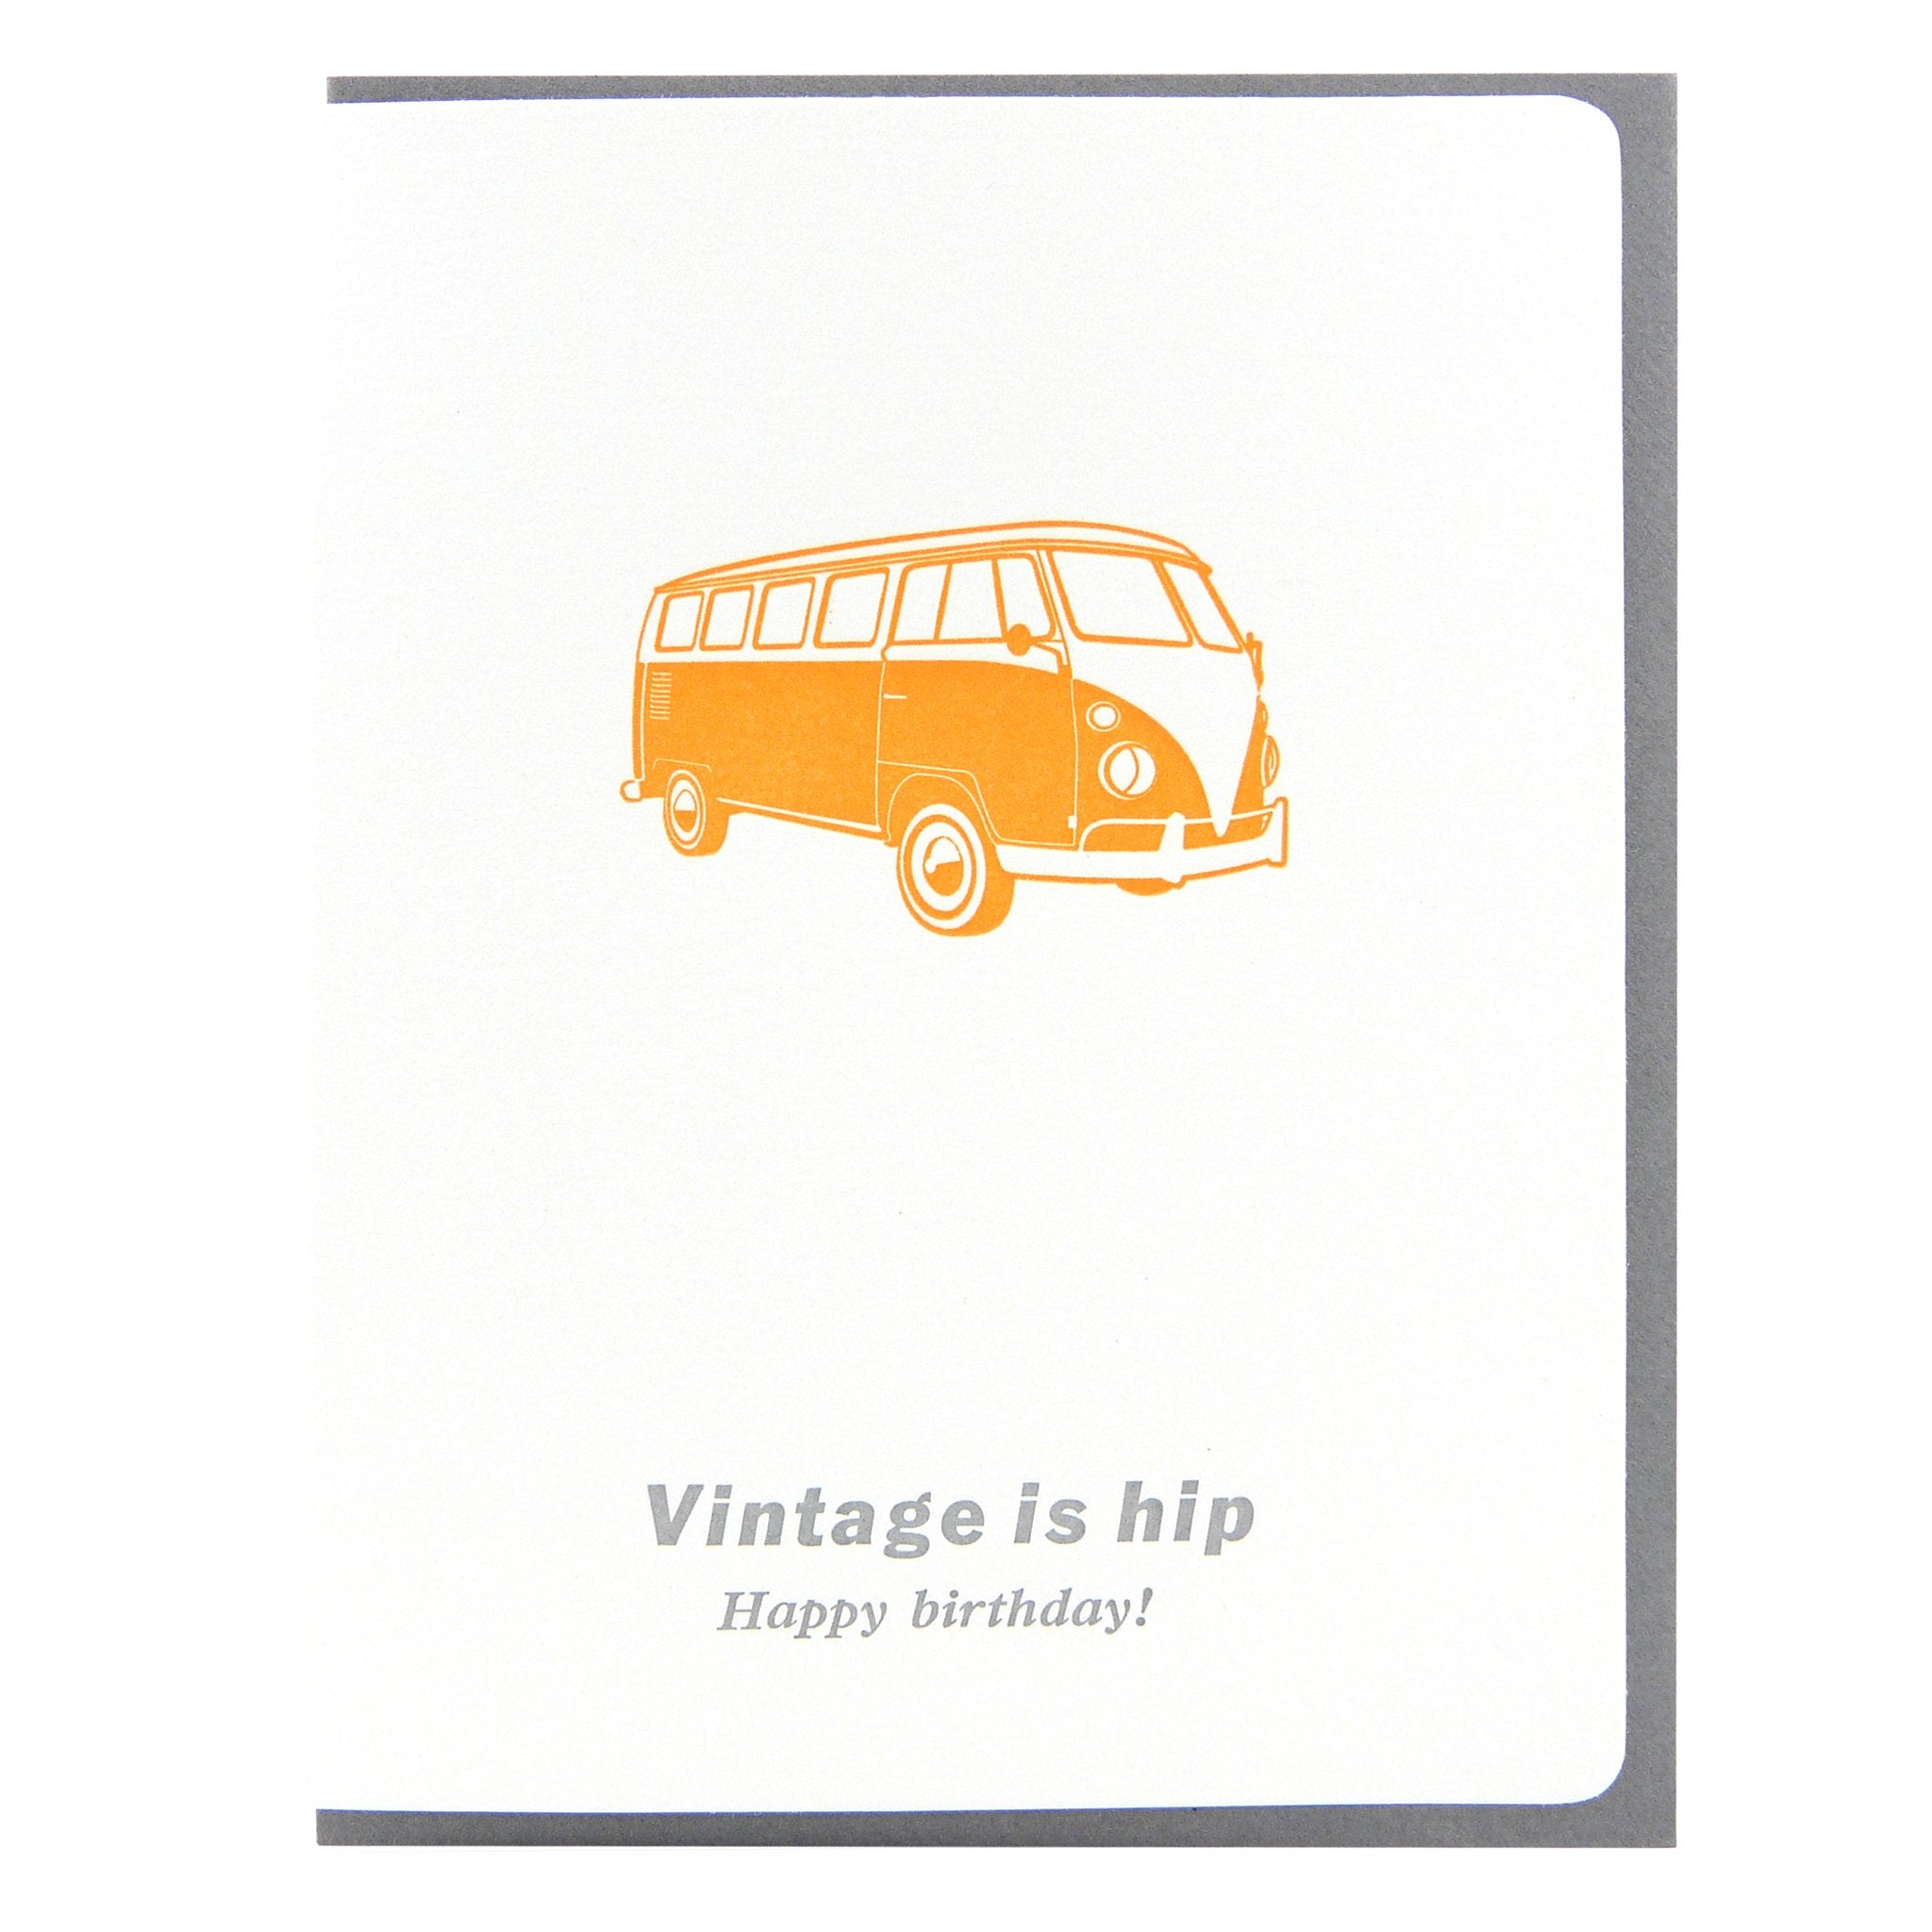 Birthday Vintage Is Hip (VW)